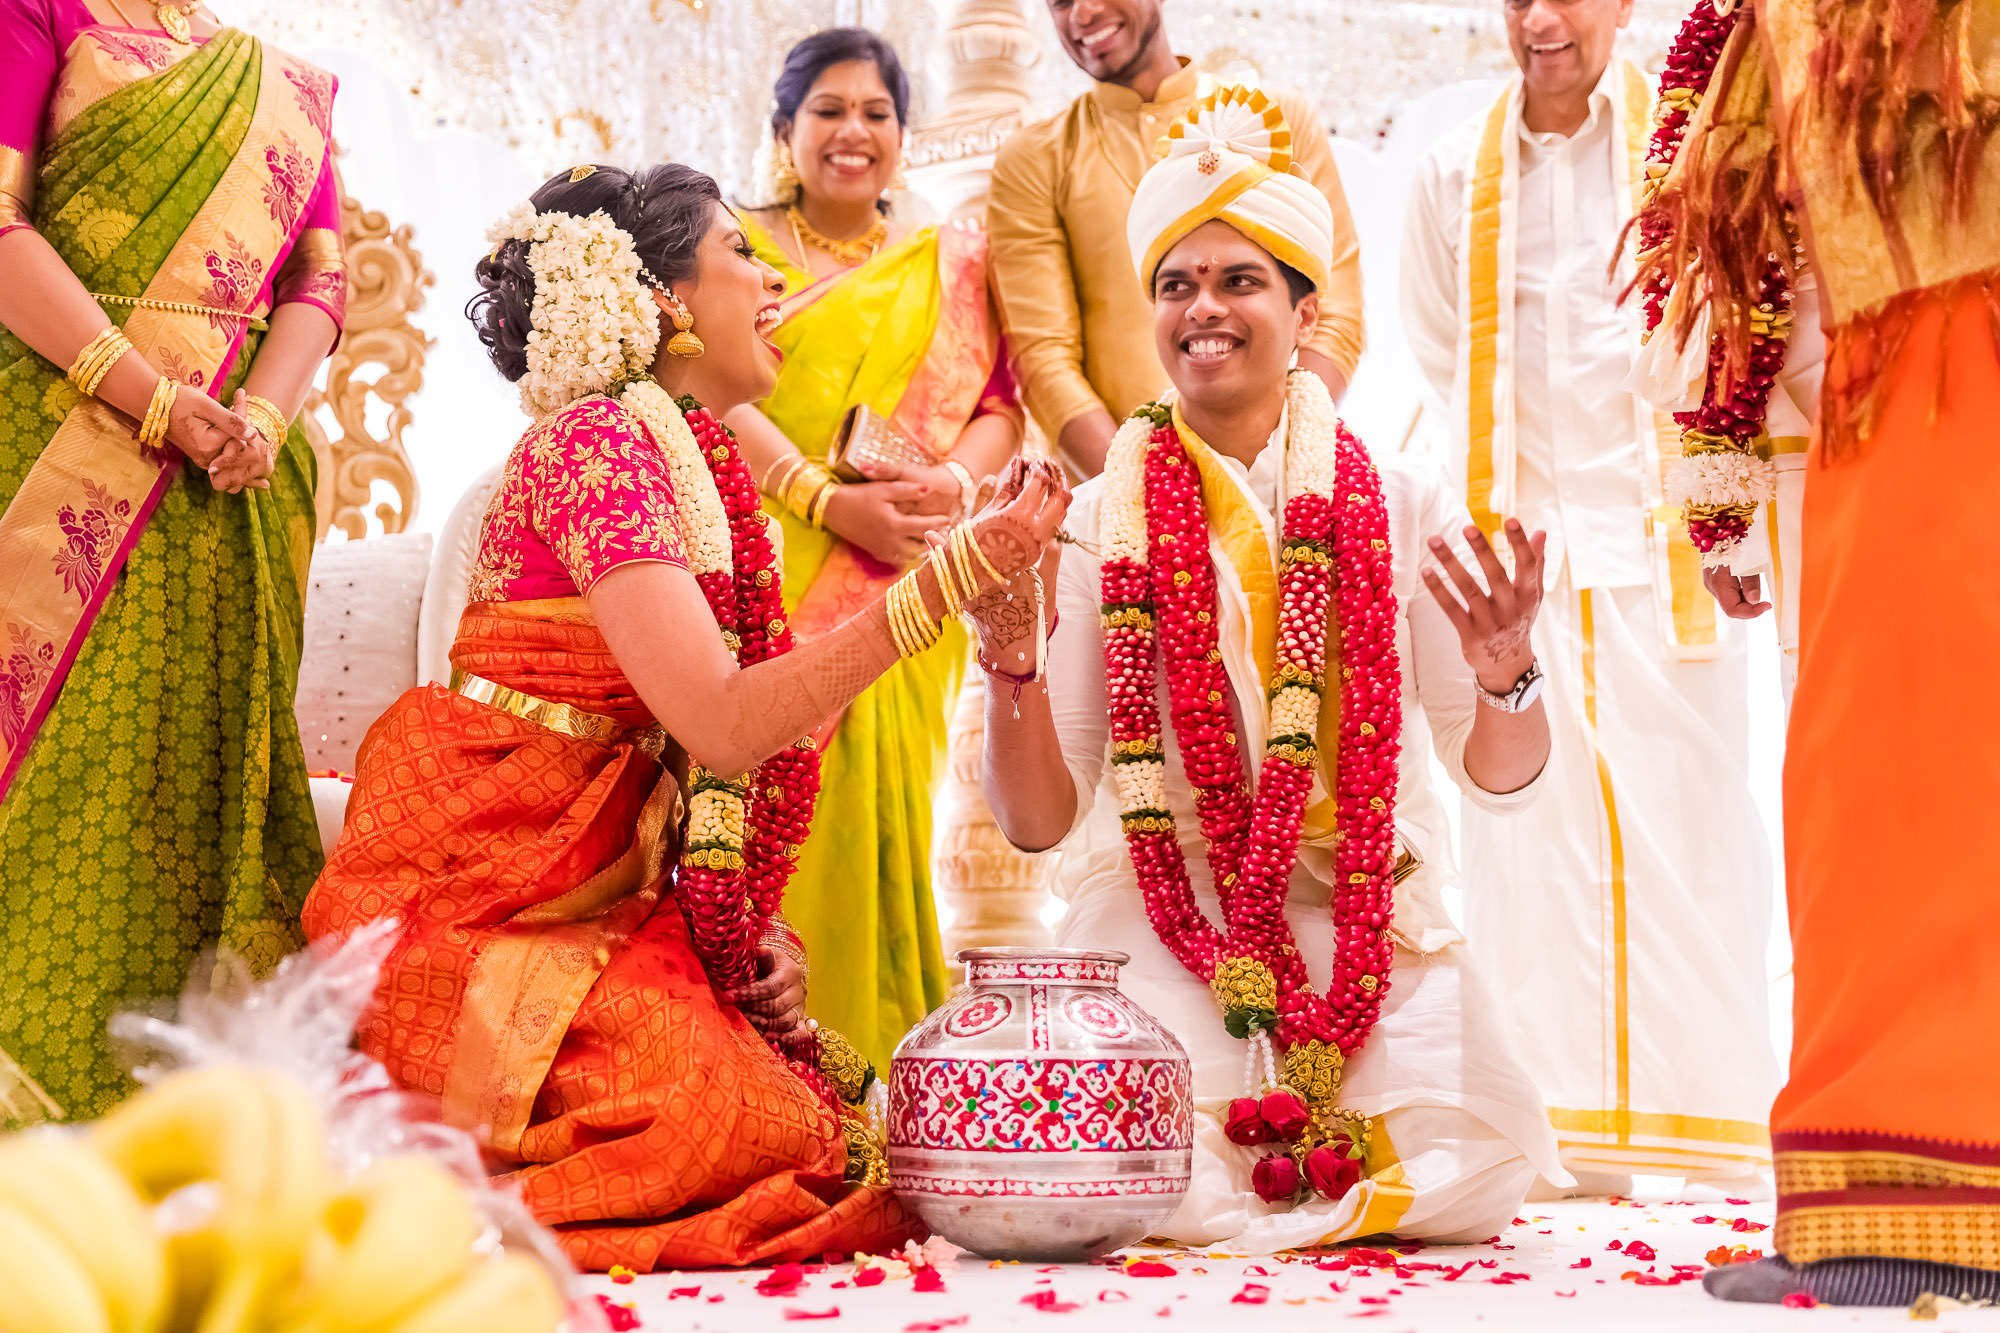 asian-wedding-hindu-tamil-photographer-heythorpe-oxford-0066.jpg